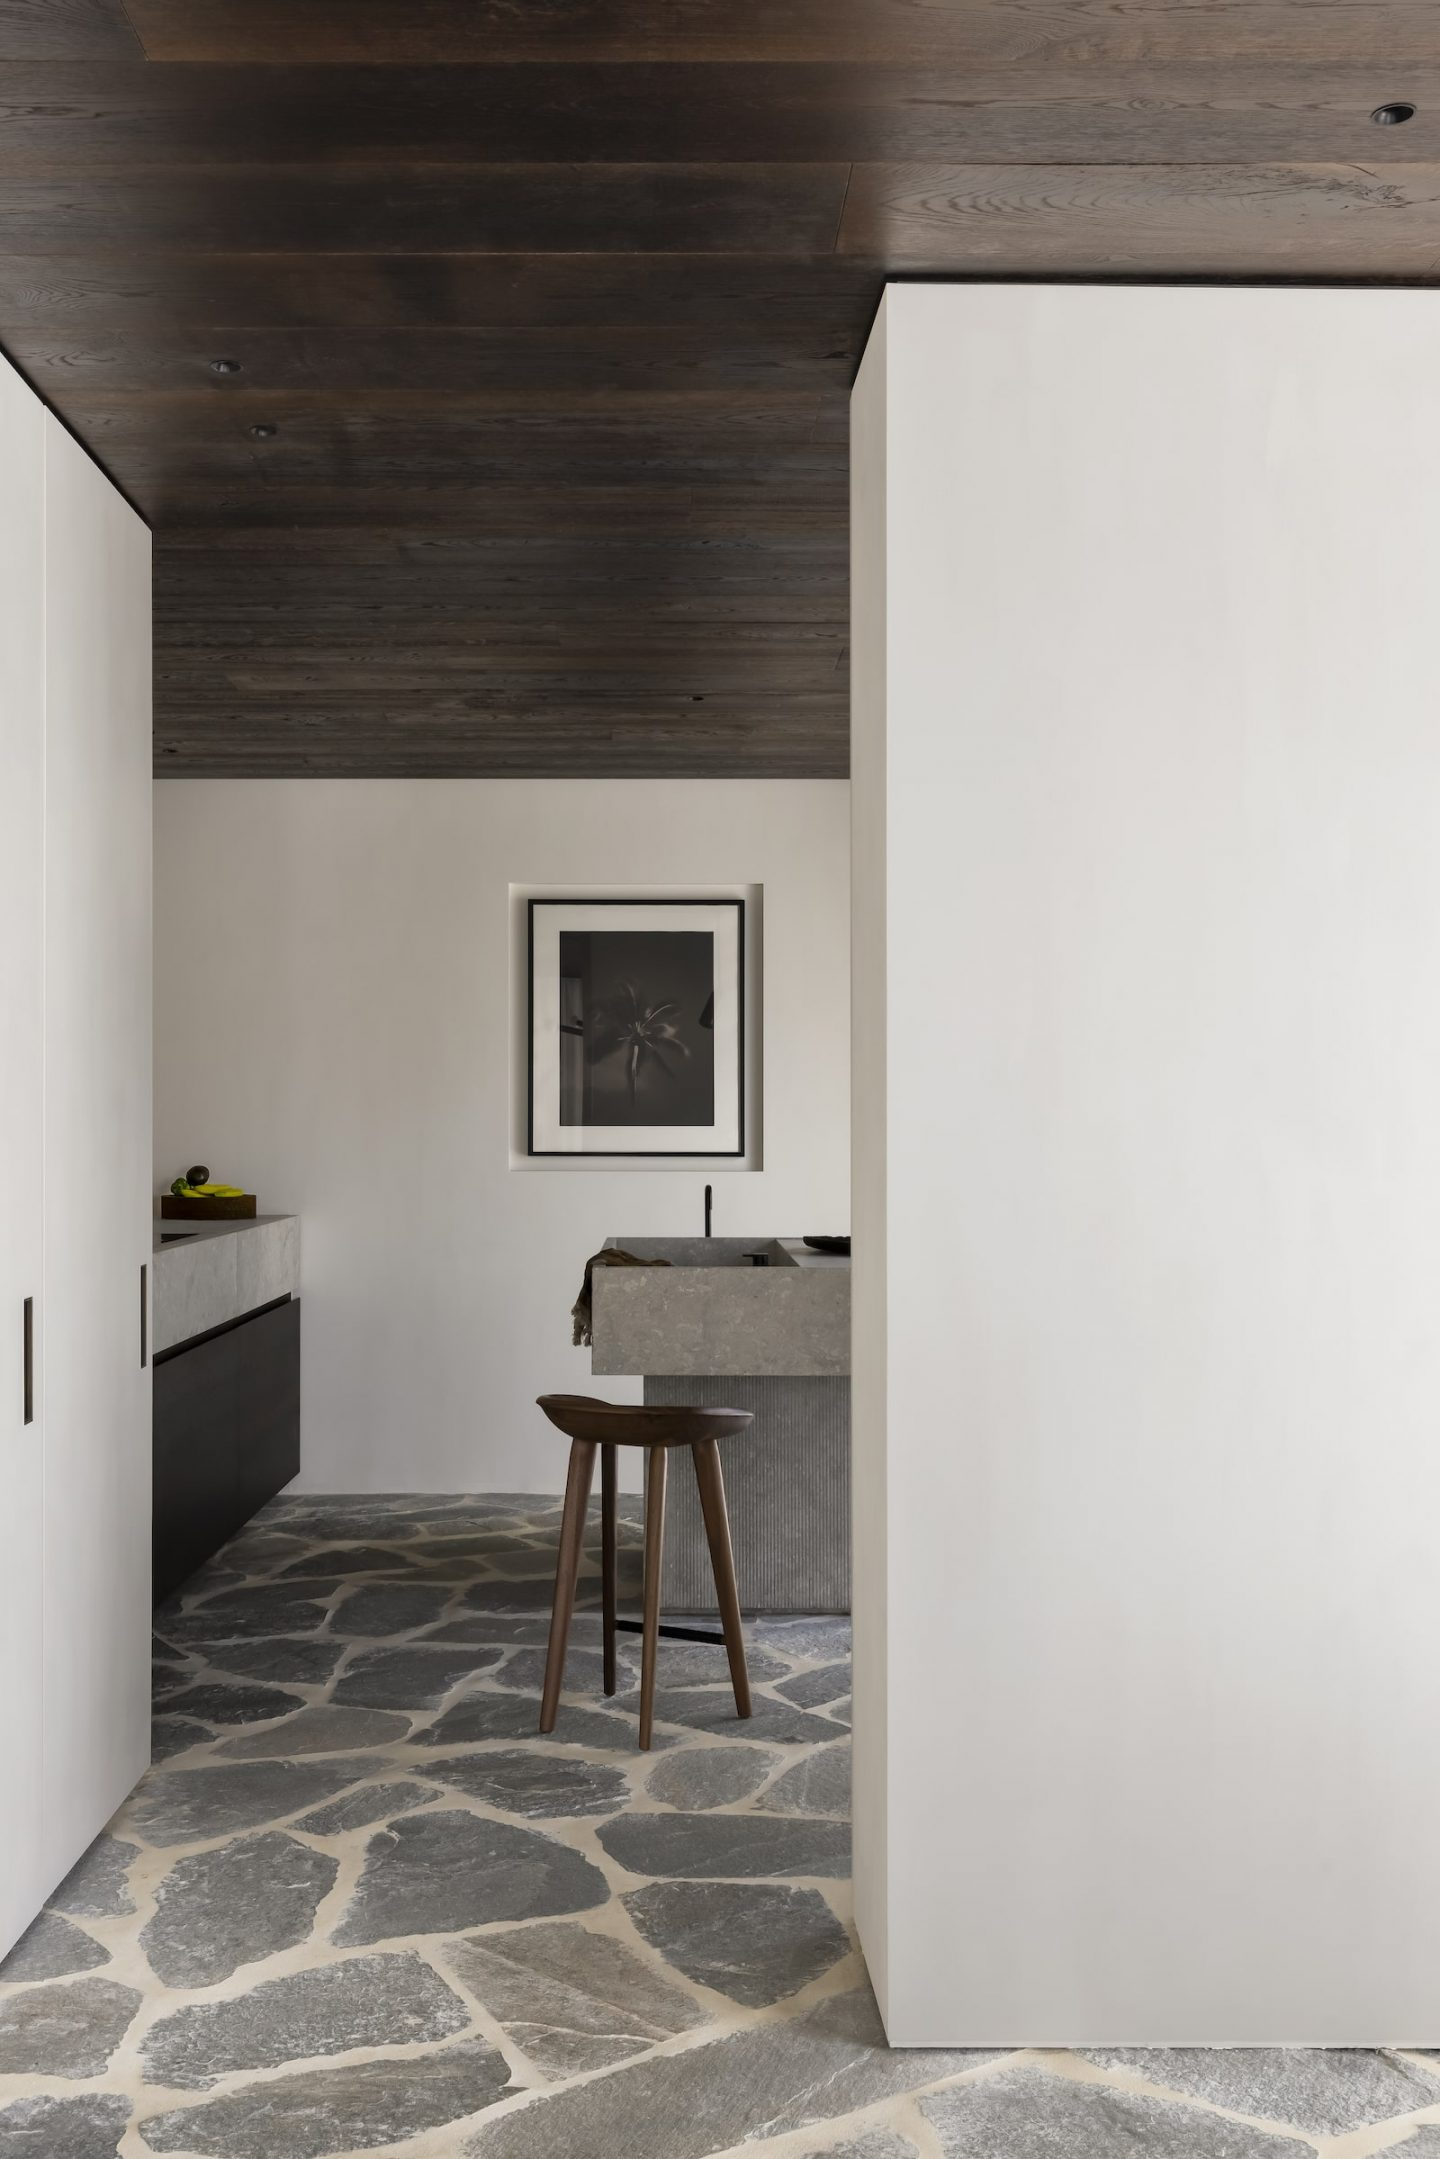 IGNANT-Architecture-Andy-Kerstens-MUD-Residence-08